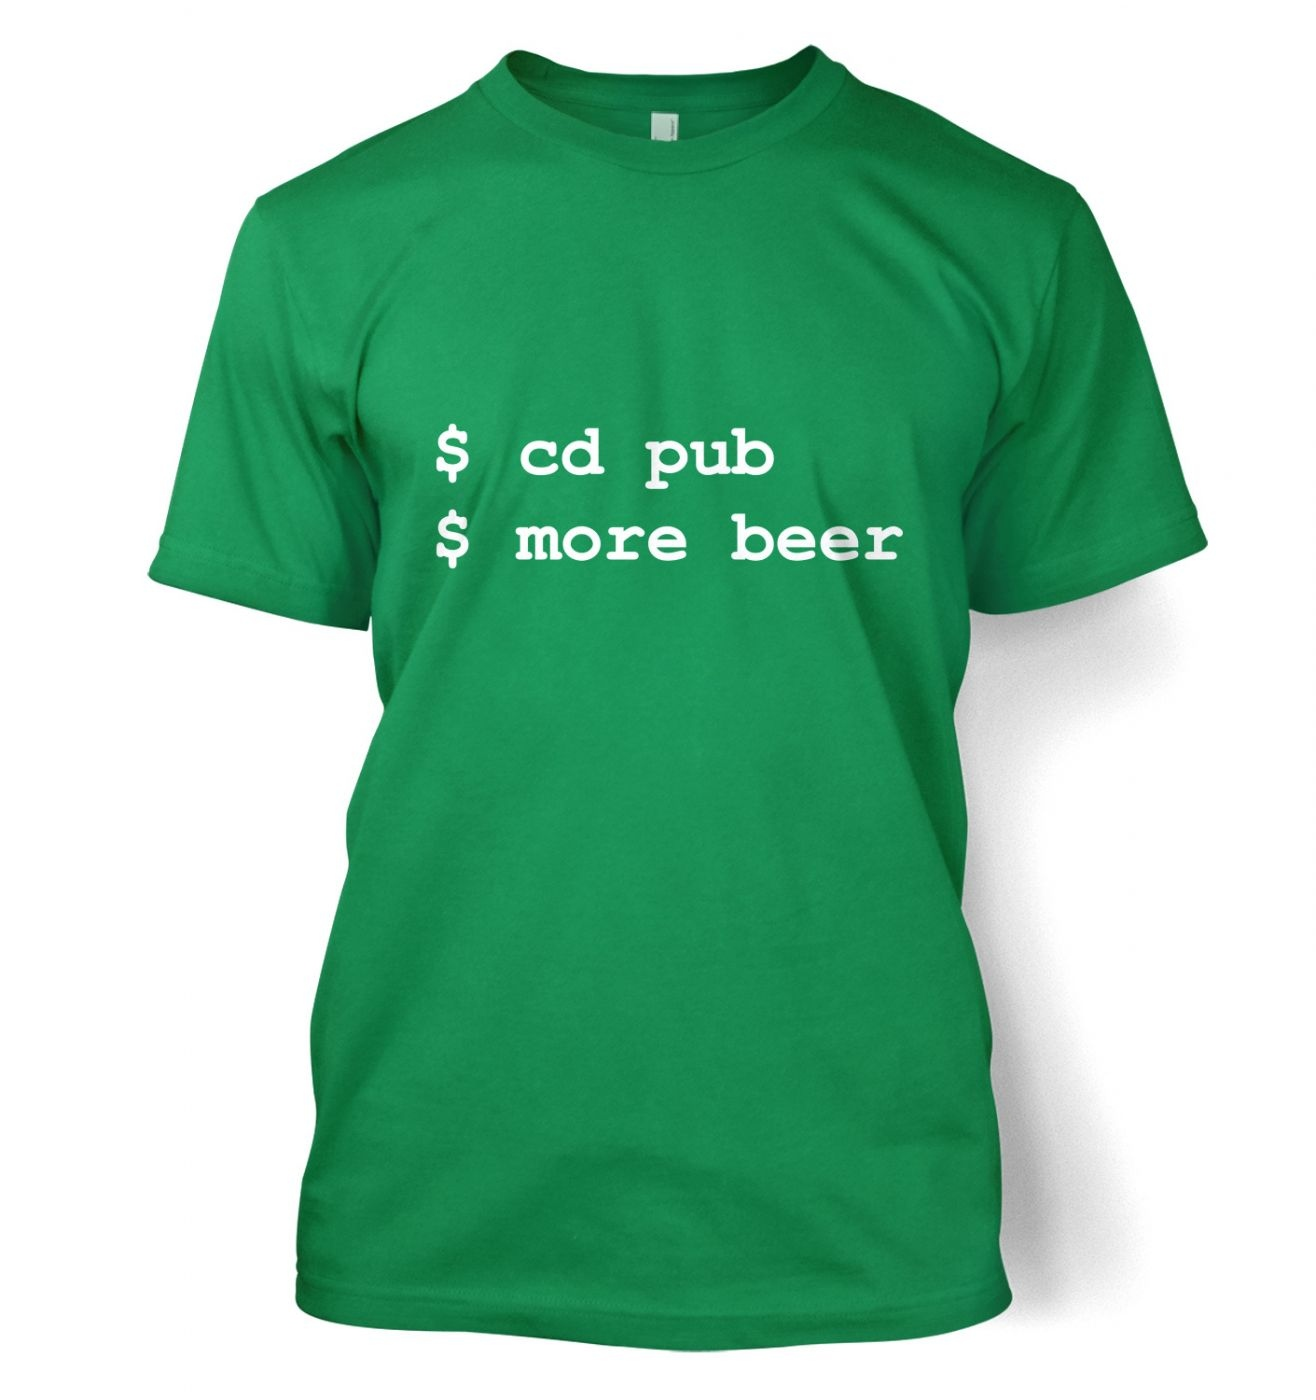 More Beer Linux t-shirt